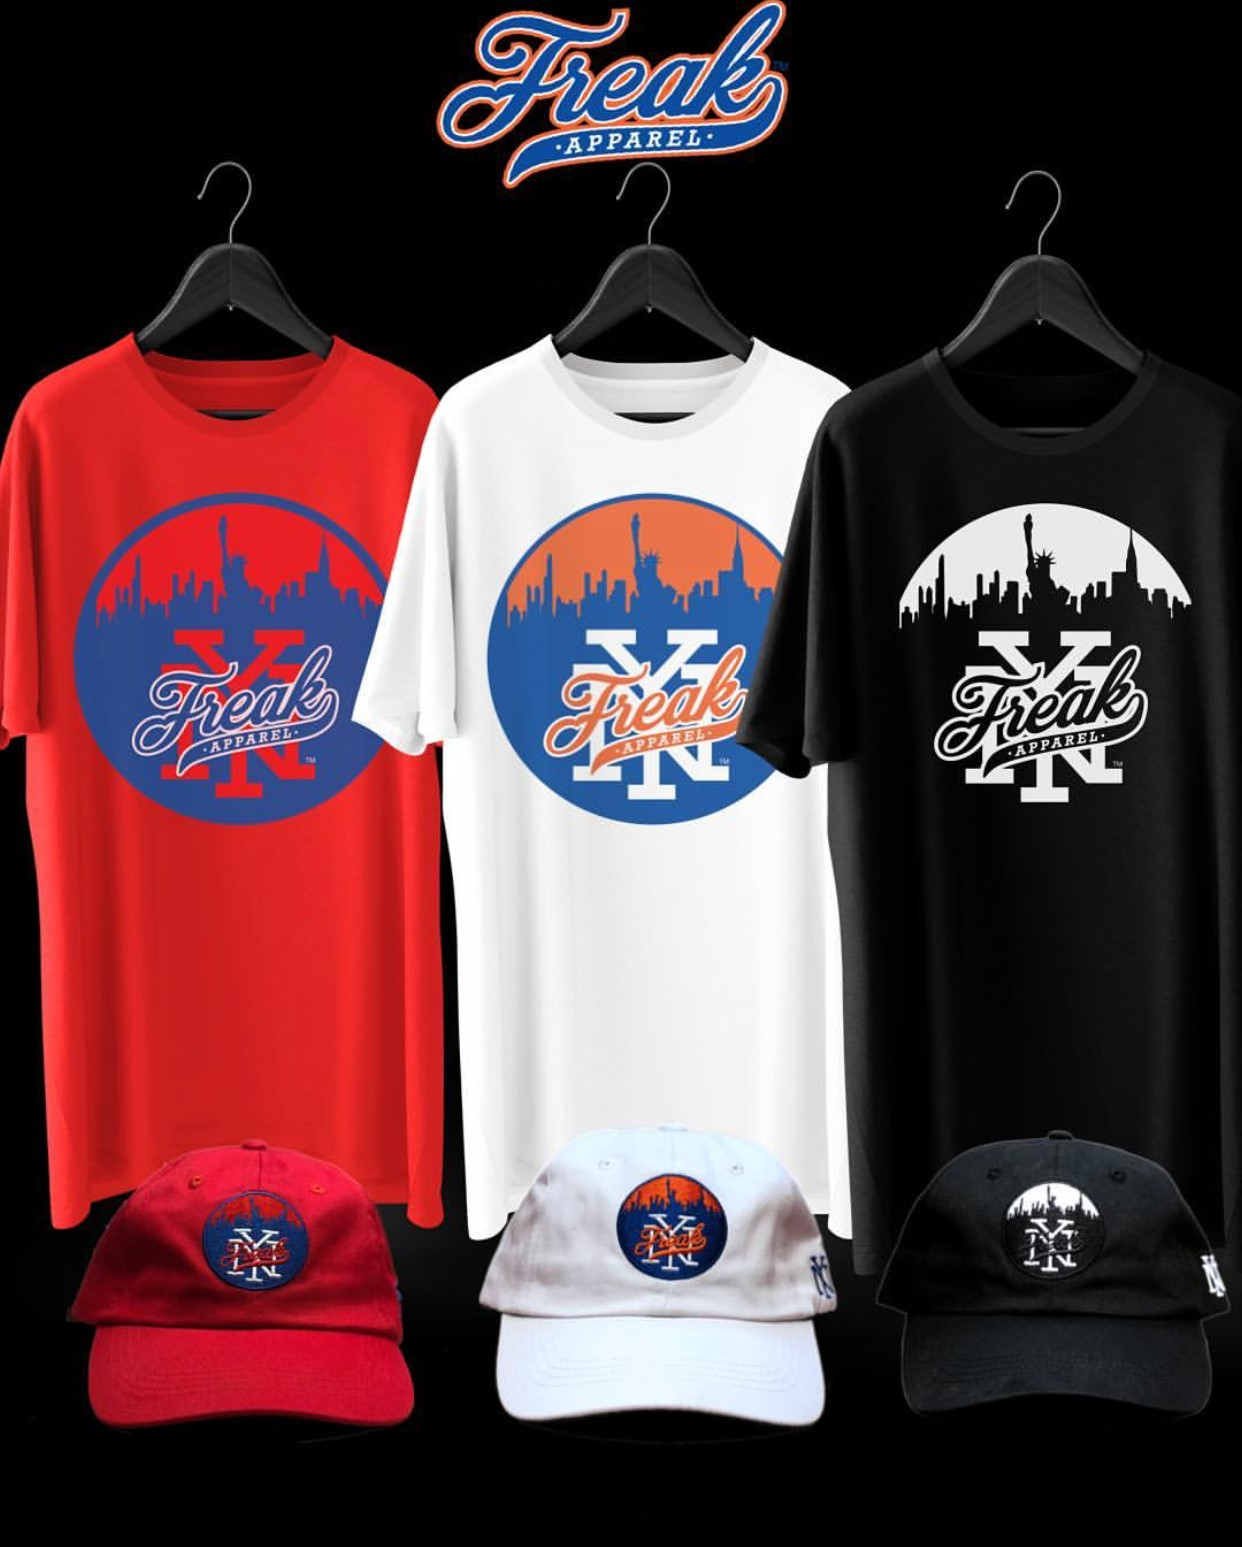 StatementGames Gaming Newsletter – Partnership With NY Freak Apparel